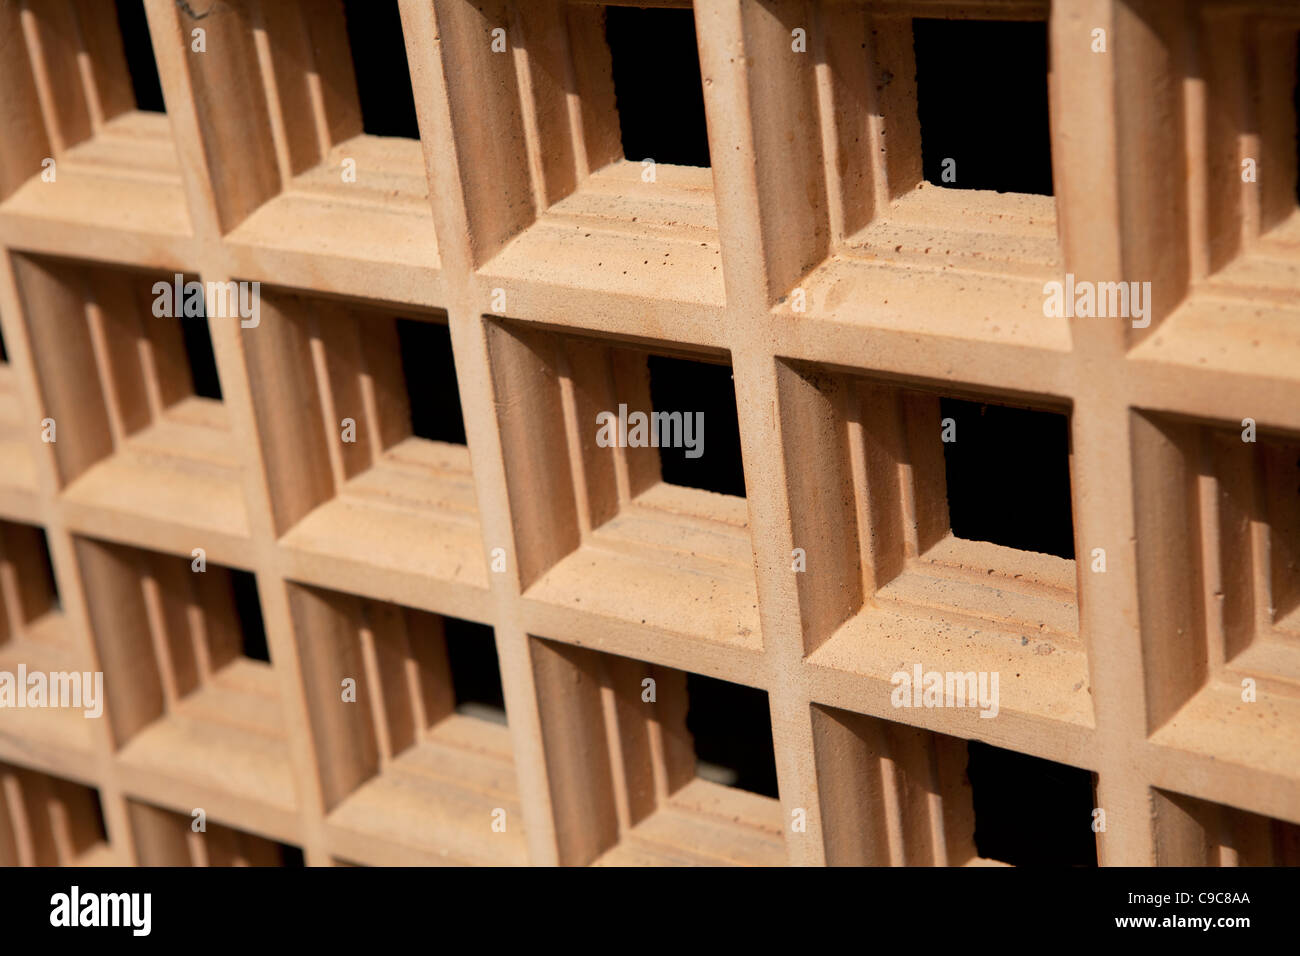 Clay Air Vents in the 1930's Conservatory in Fitzroy Gardens Melbourne. - Stock Image